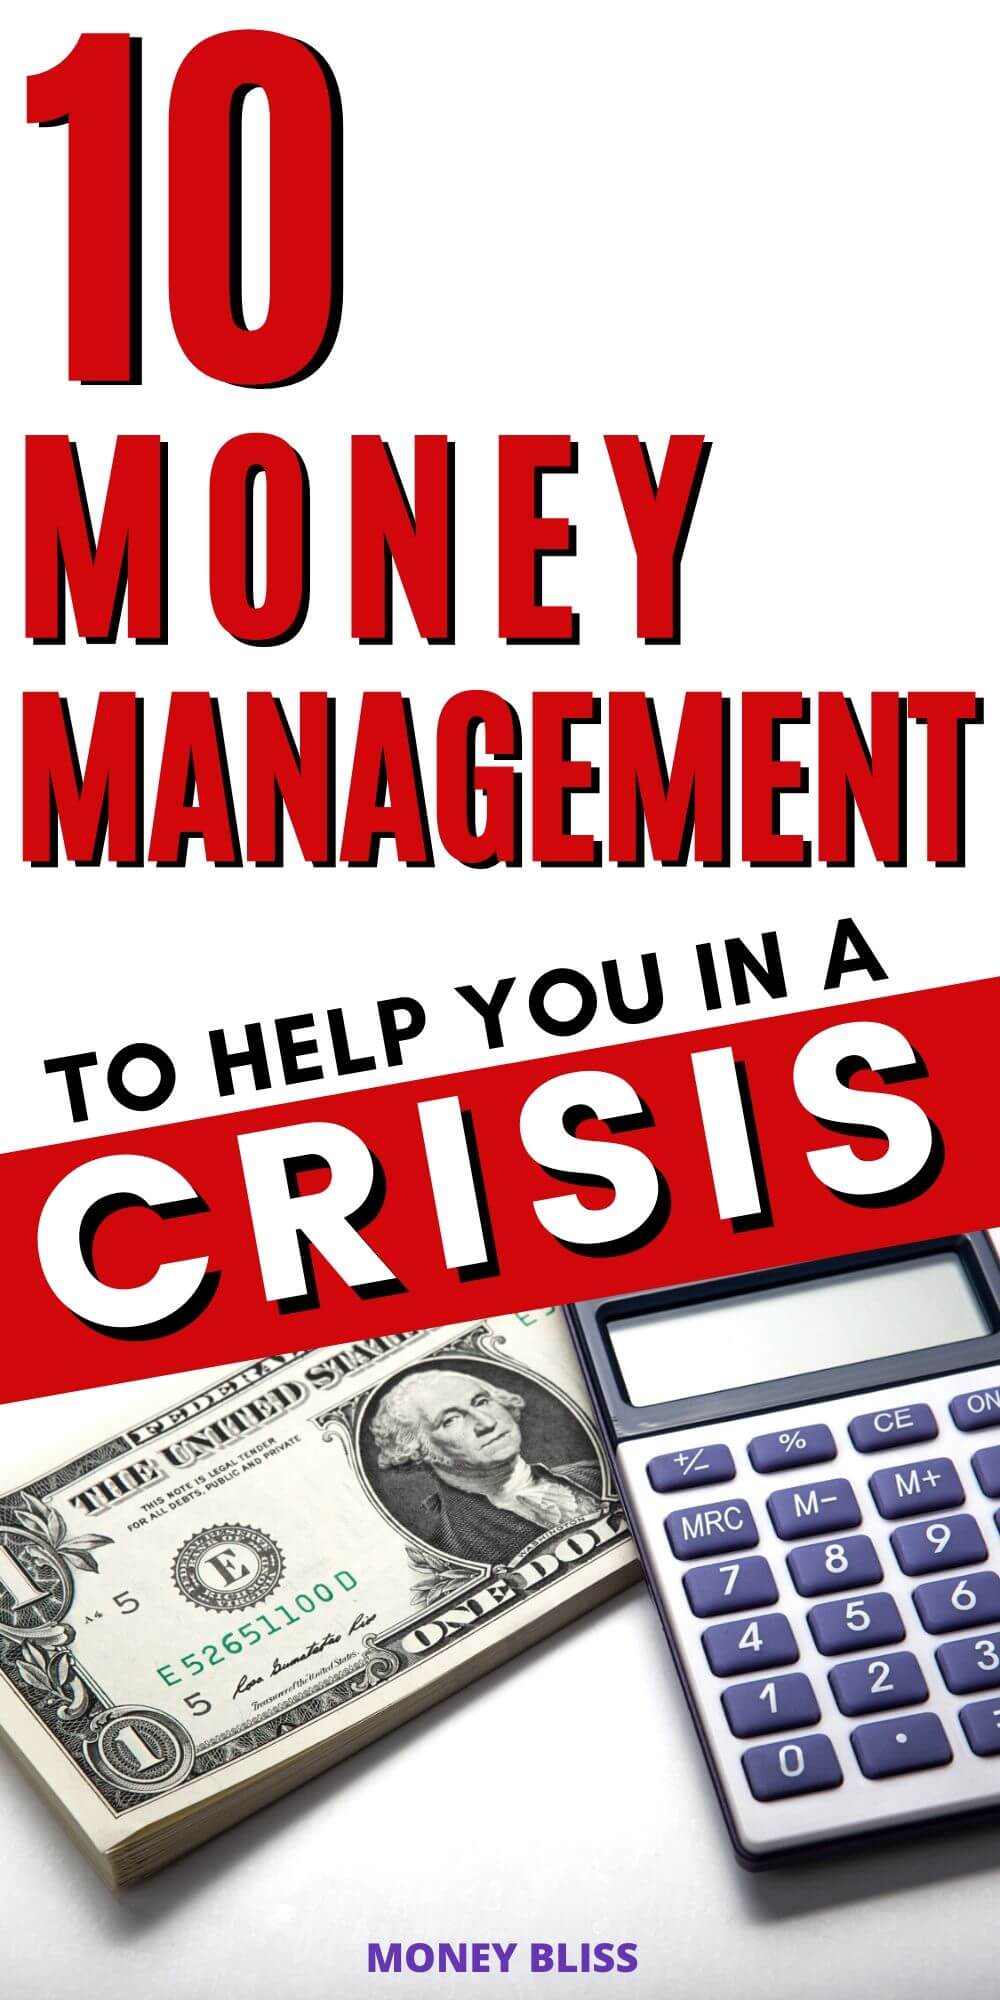 Read this post to get money management tips to help you in a crisis. The current outbreak and pandemic doesn't mean you have to suffer a personal financial crisis. Use the time to improve your budget and enjoy debt free living.